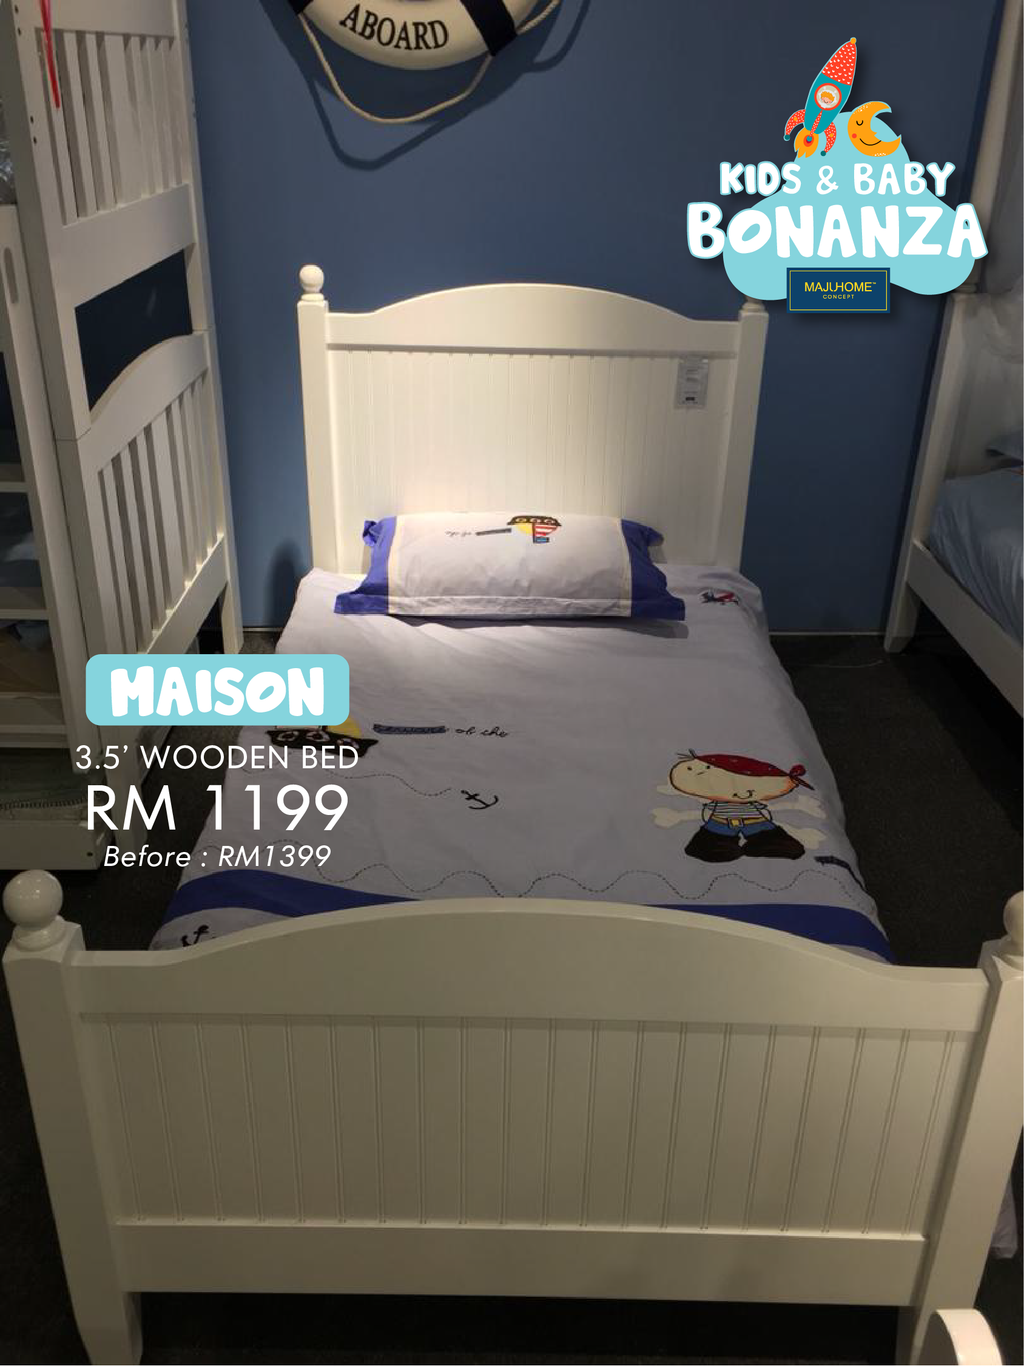 MAISON 3.5' Wooden Bed